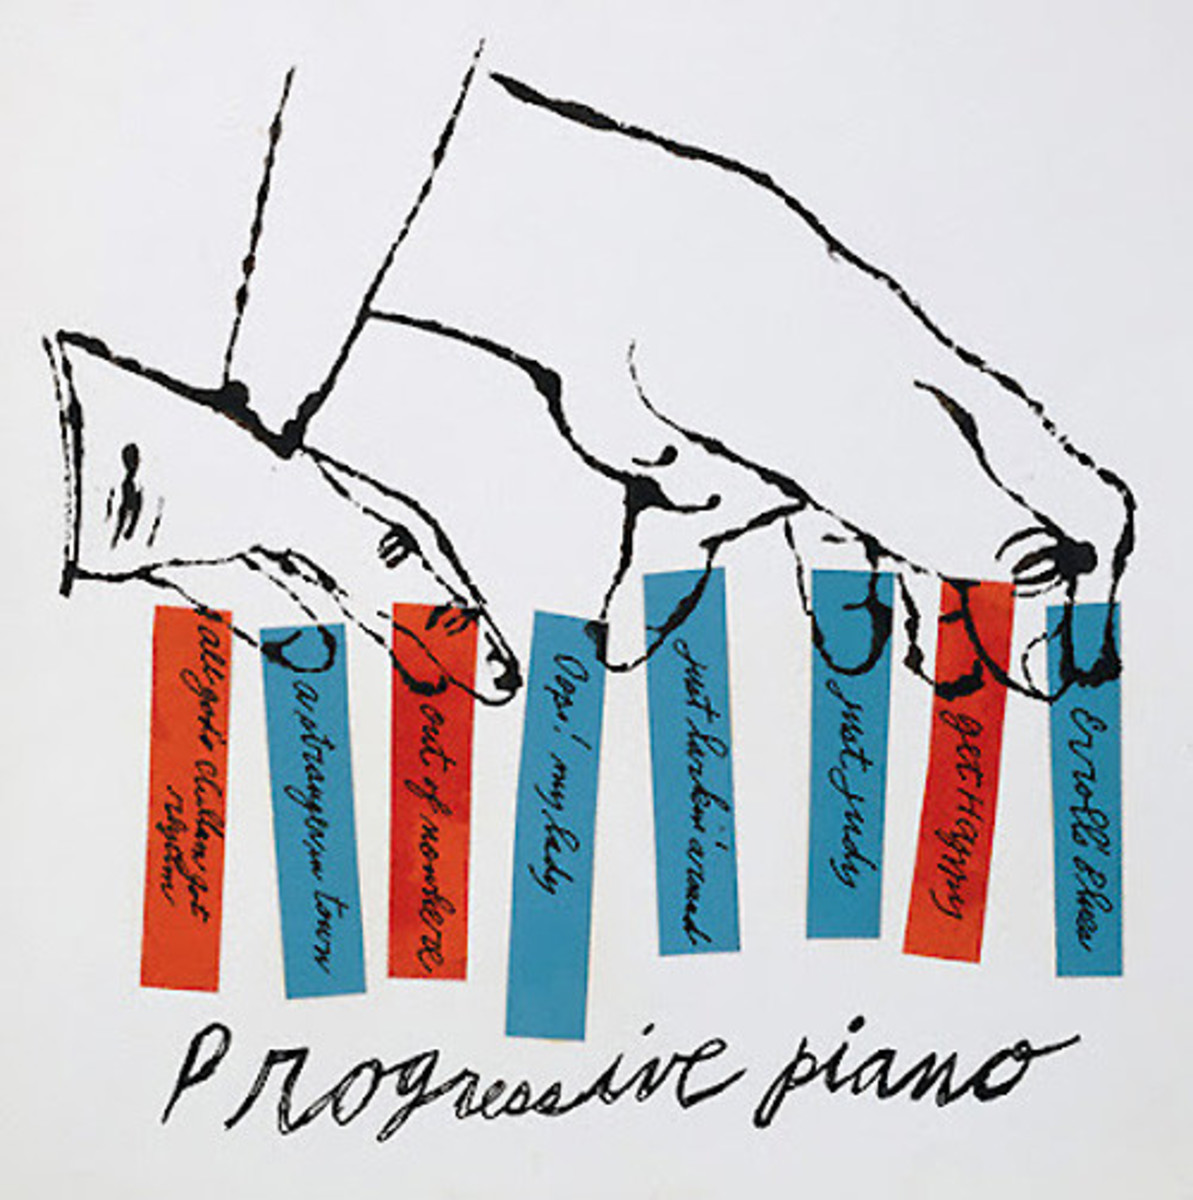 "Various Artist ""Progressive Piano"" RCA Victor 12"" LP Vinyl Record, Album Cover Art and Design by Andy Warhol"